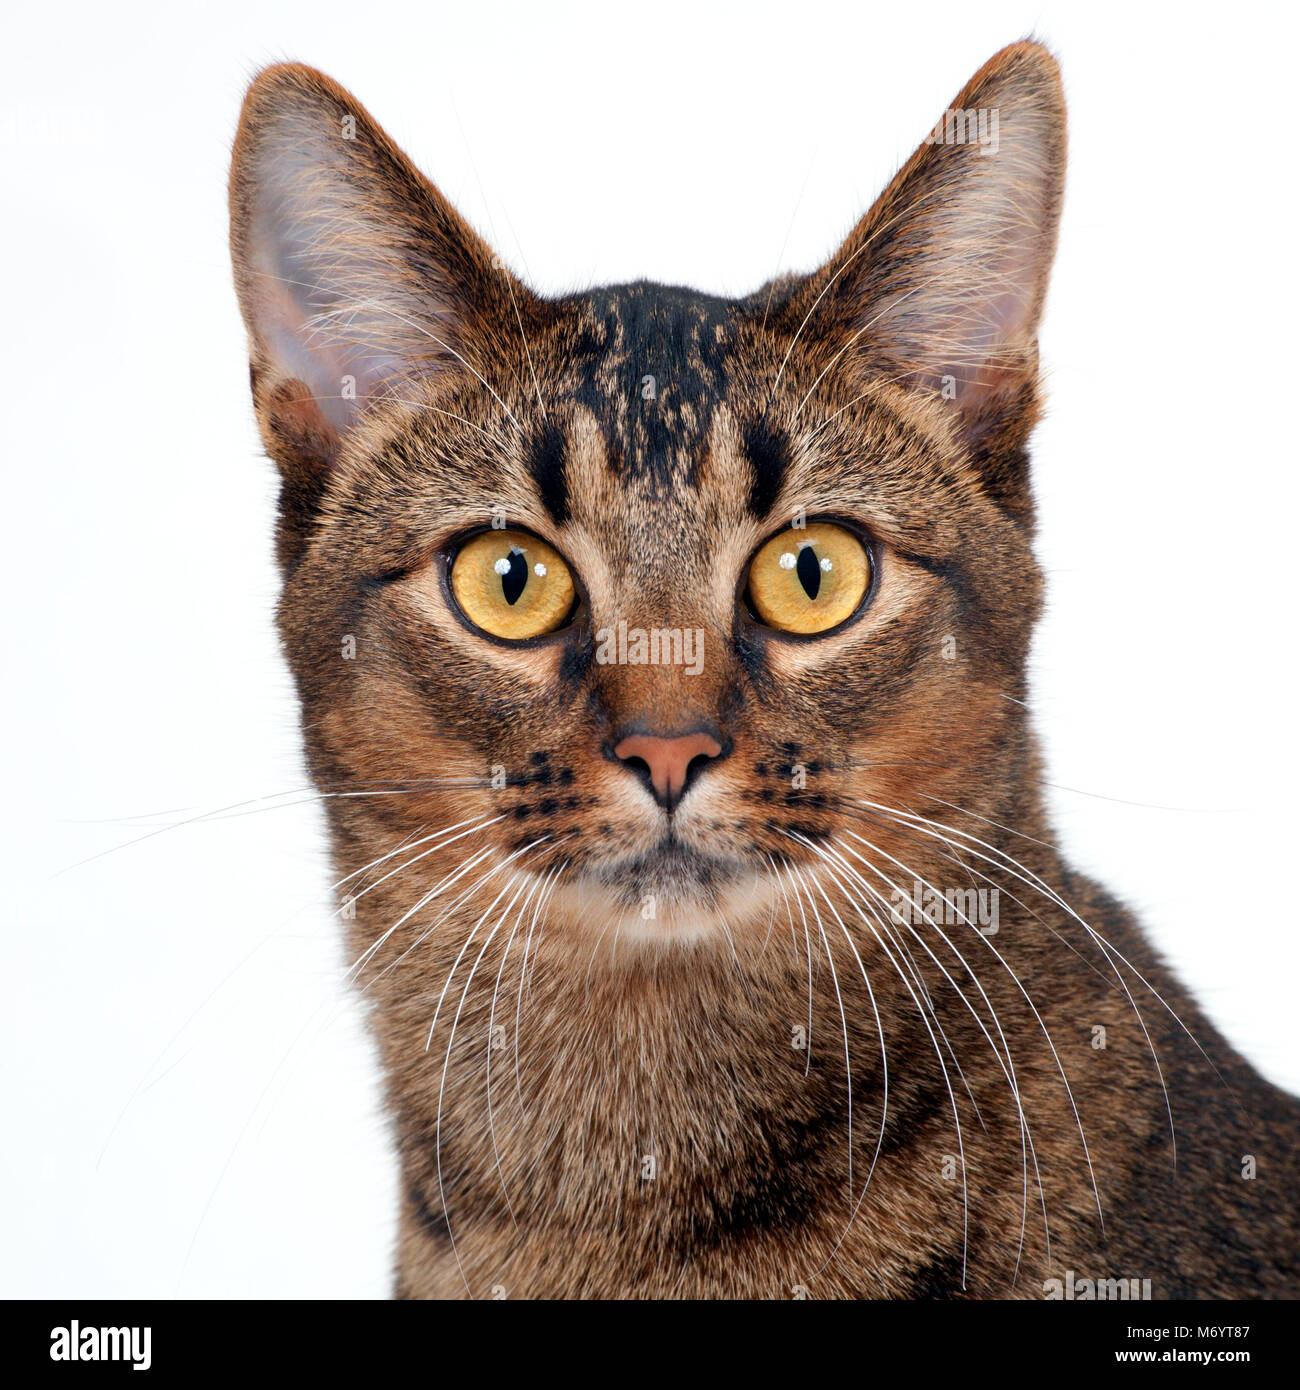 Striking amber eyed part Abyssinian young male cat looking at the camera - Stock Image